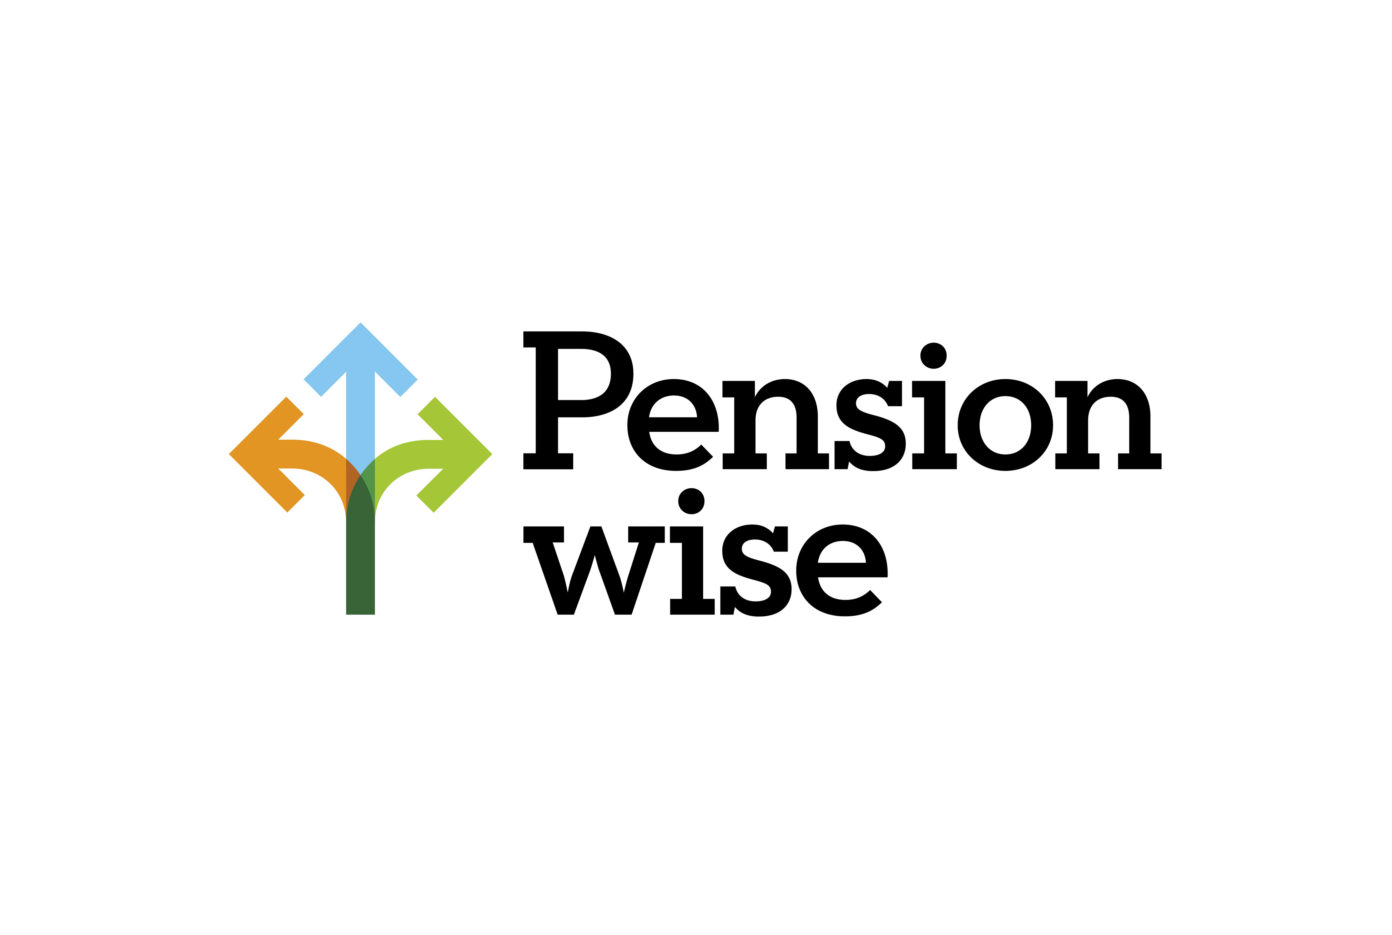 CO Pension-wise-Large-2 1400x940